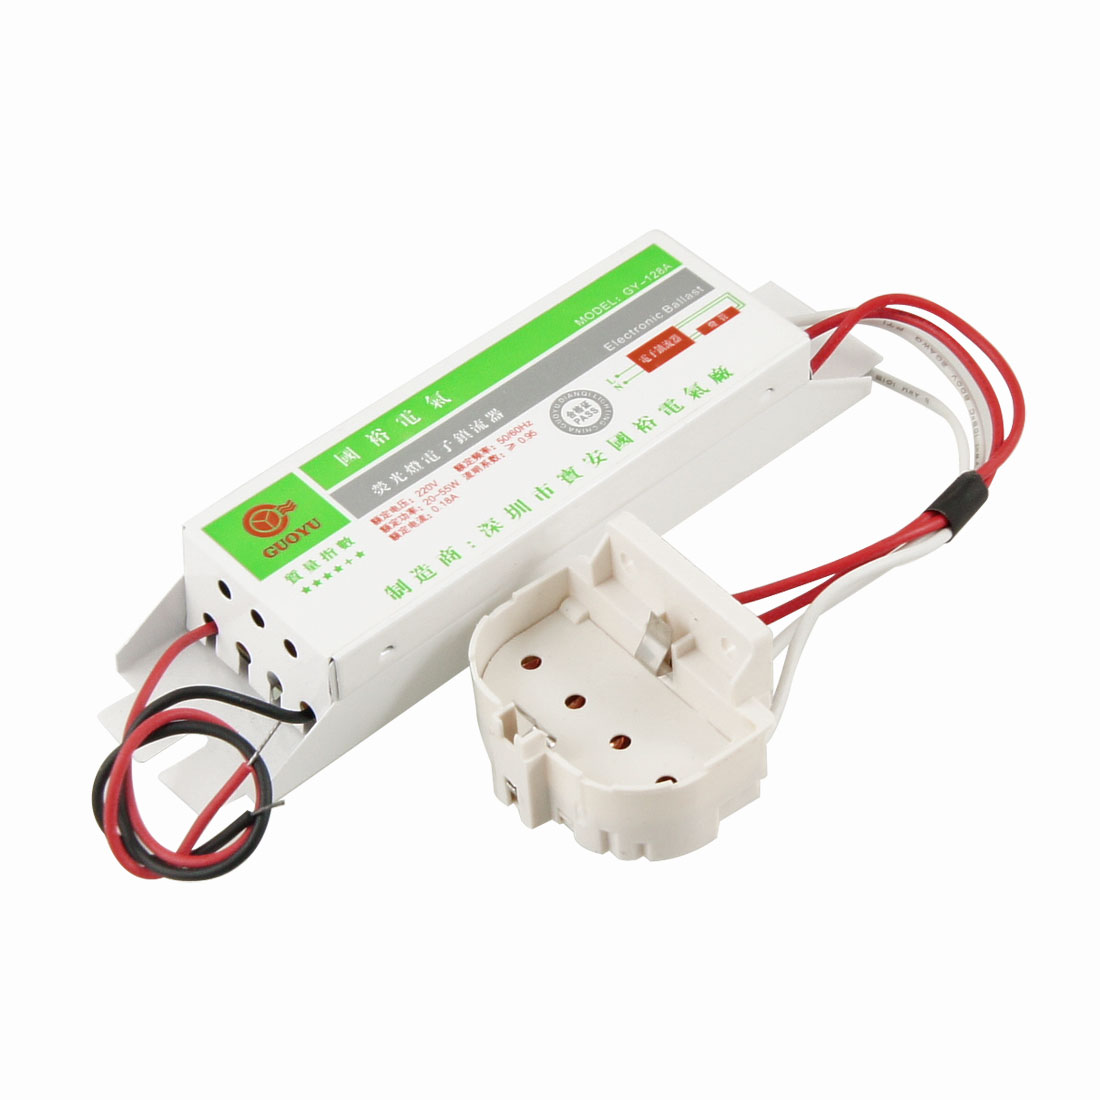 20-55W Energy Saving Fluorescent Light Lamp Ballast AC 220V